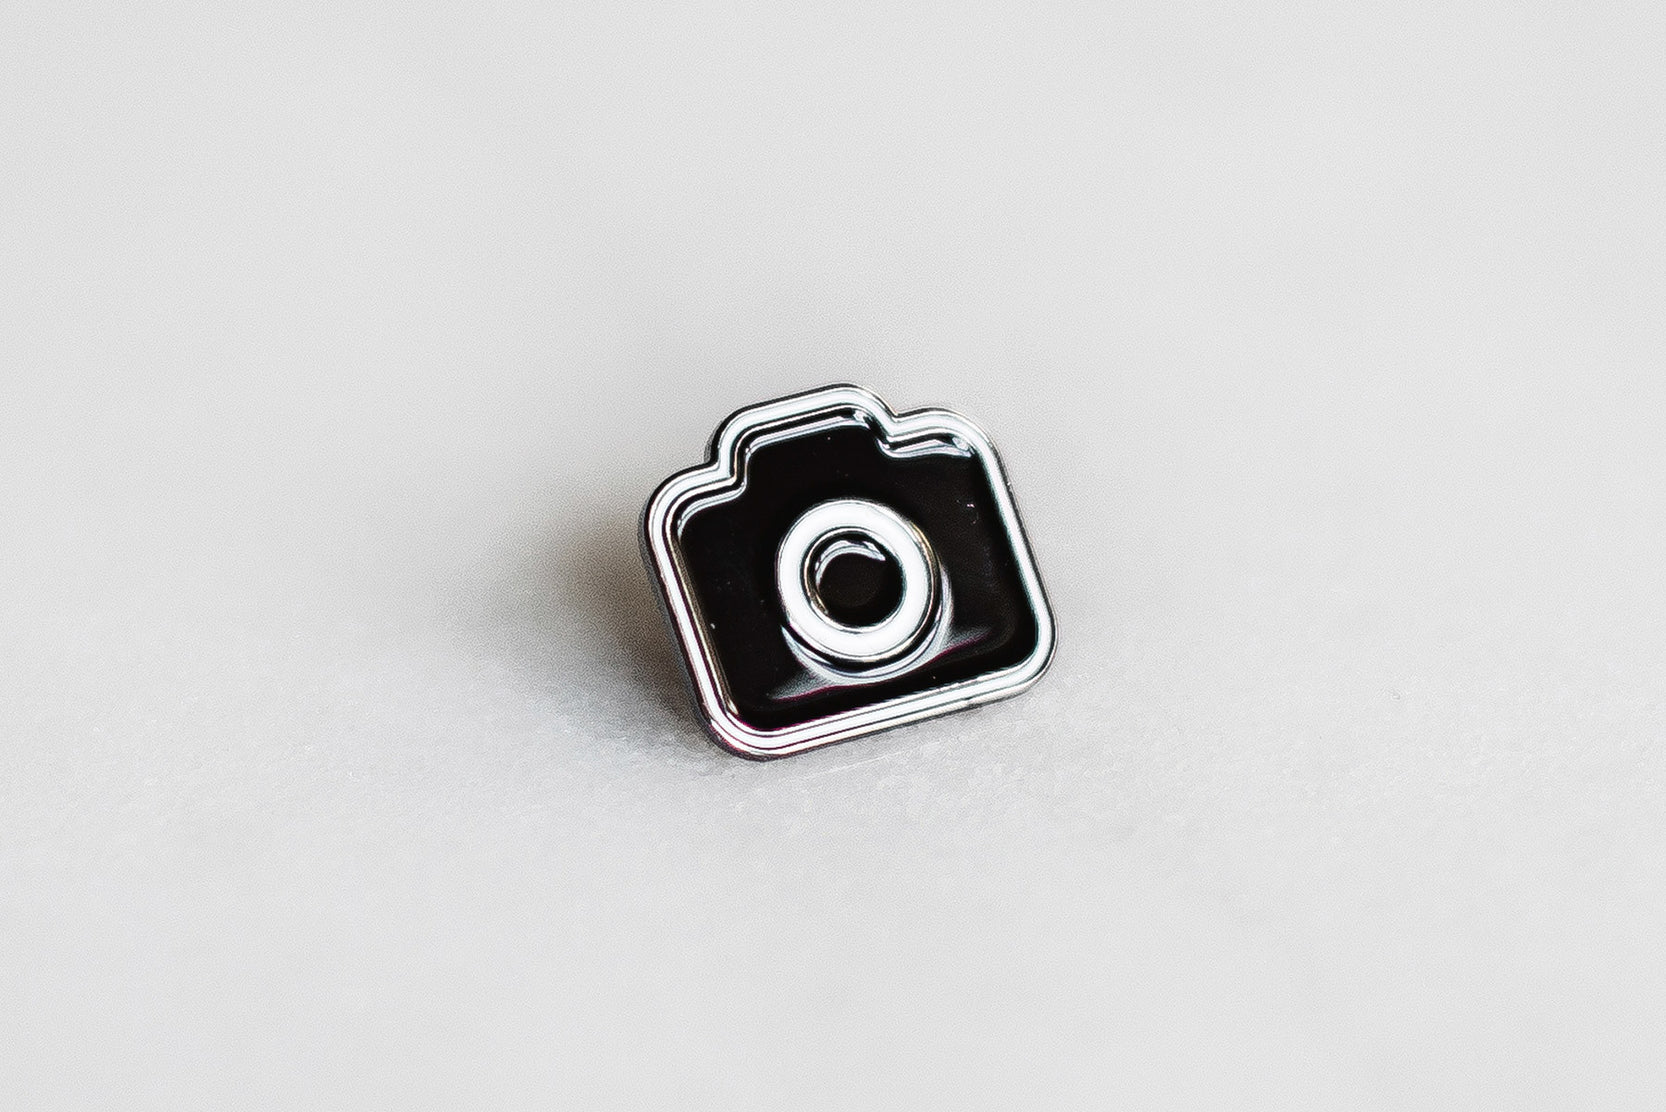 Unsplash Pin